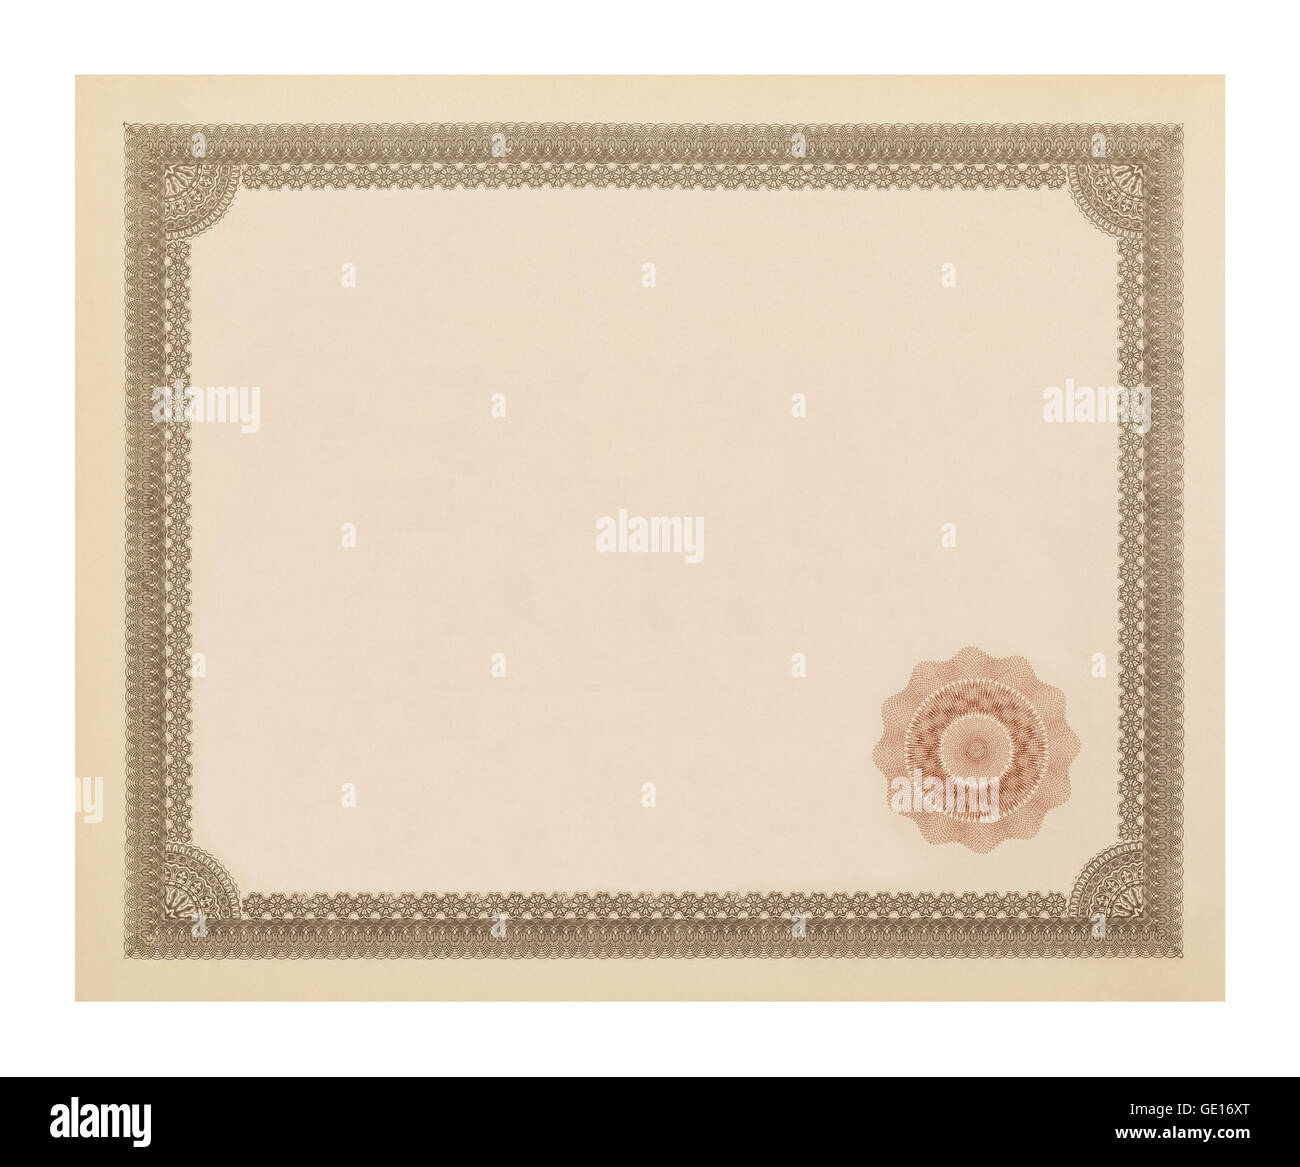 Blank Ornate Old Certificate Isolated on White Background. - Stock Image